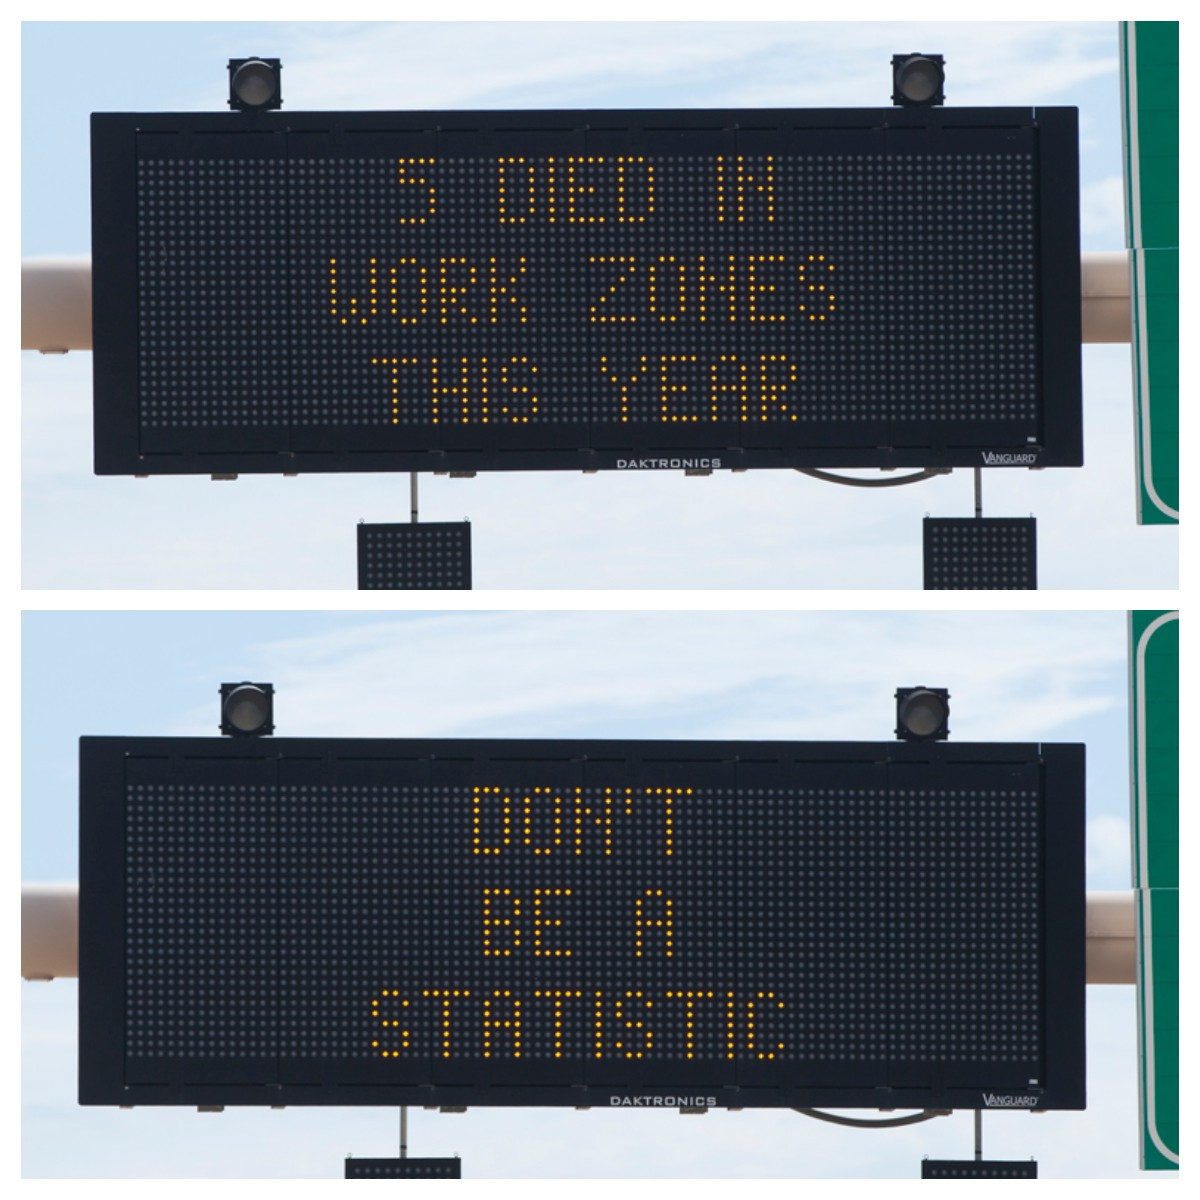 /content/dam/ok/en/odot/images/message-signs/10.12.16.jpg